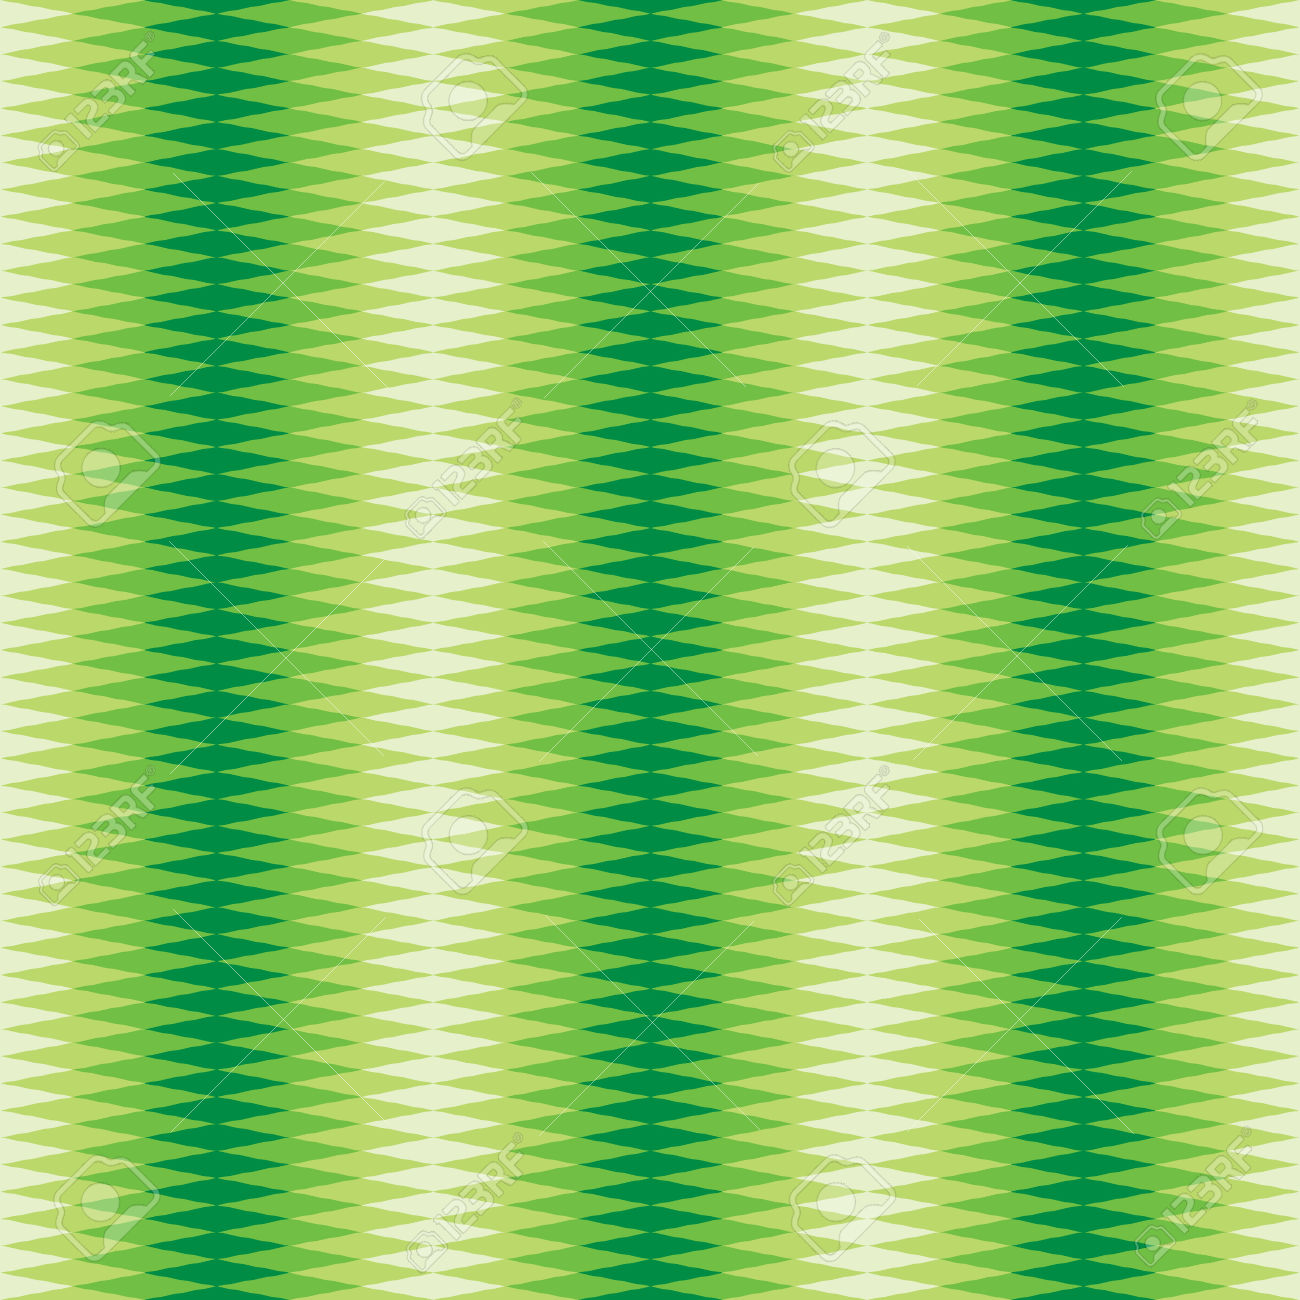 Seamless Interlocking Sawtooth Pattern Texture Royalty Free.